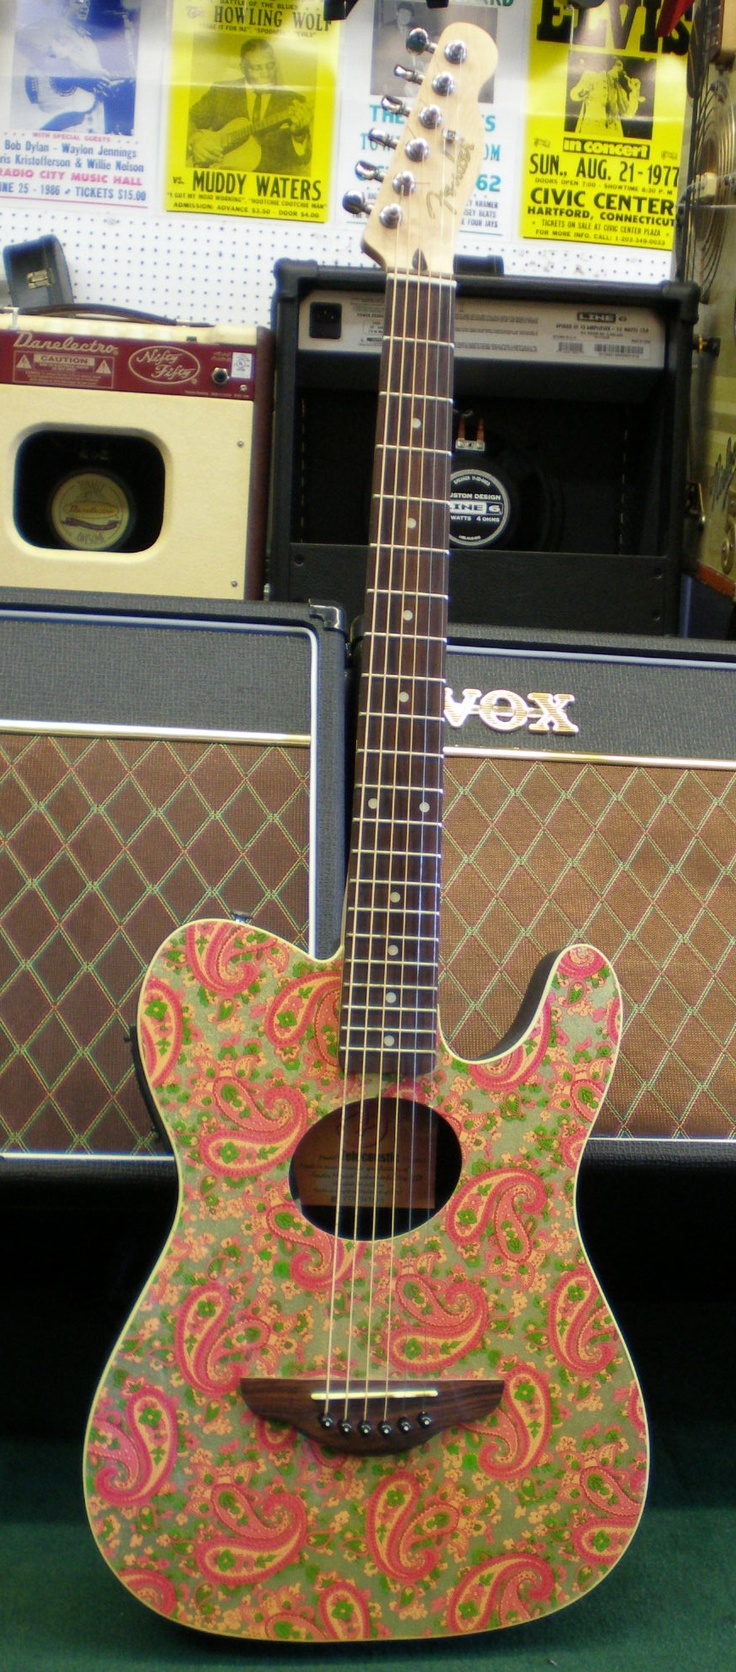 Fender Telecoustic limited edition